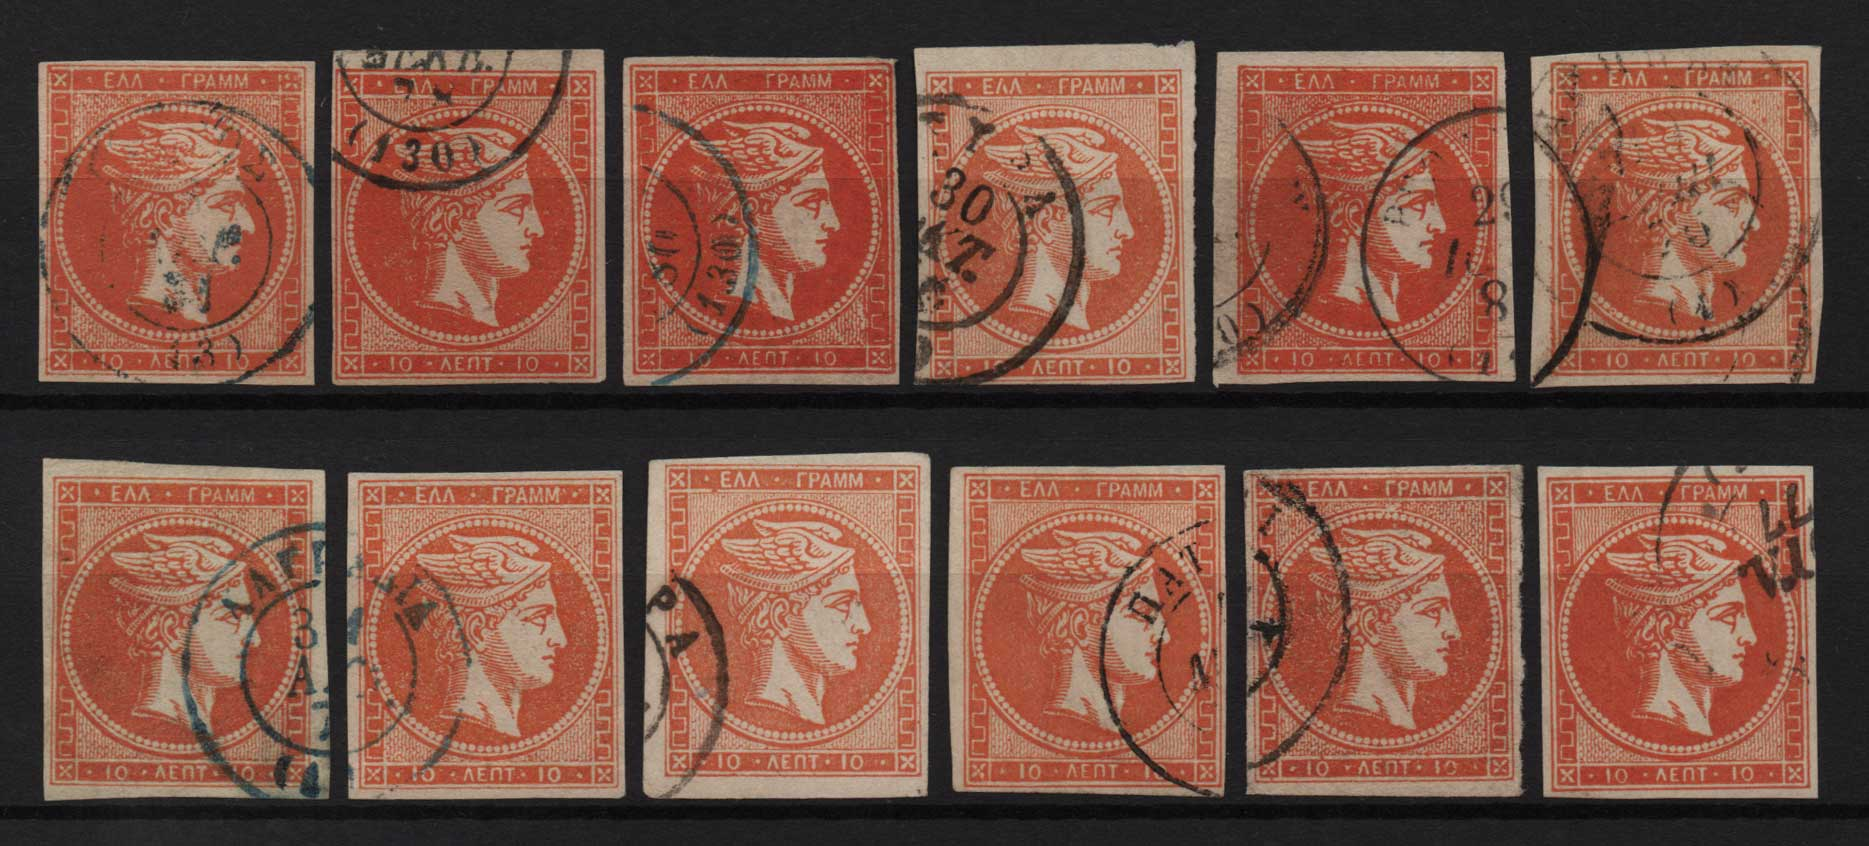 Lot 10 - GREECE-  LARGE HERMES HEAD large hermes head -  Athens Auctions Public Auction 64 General Stamp Sale